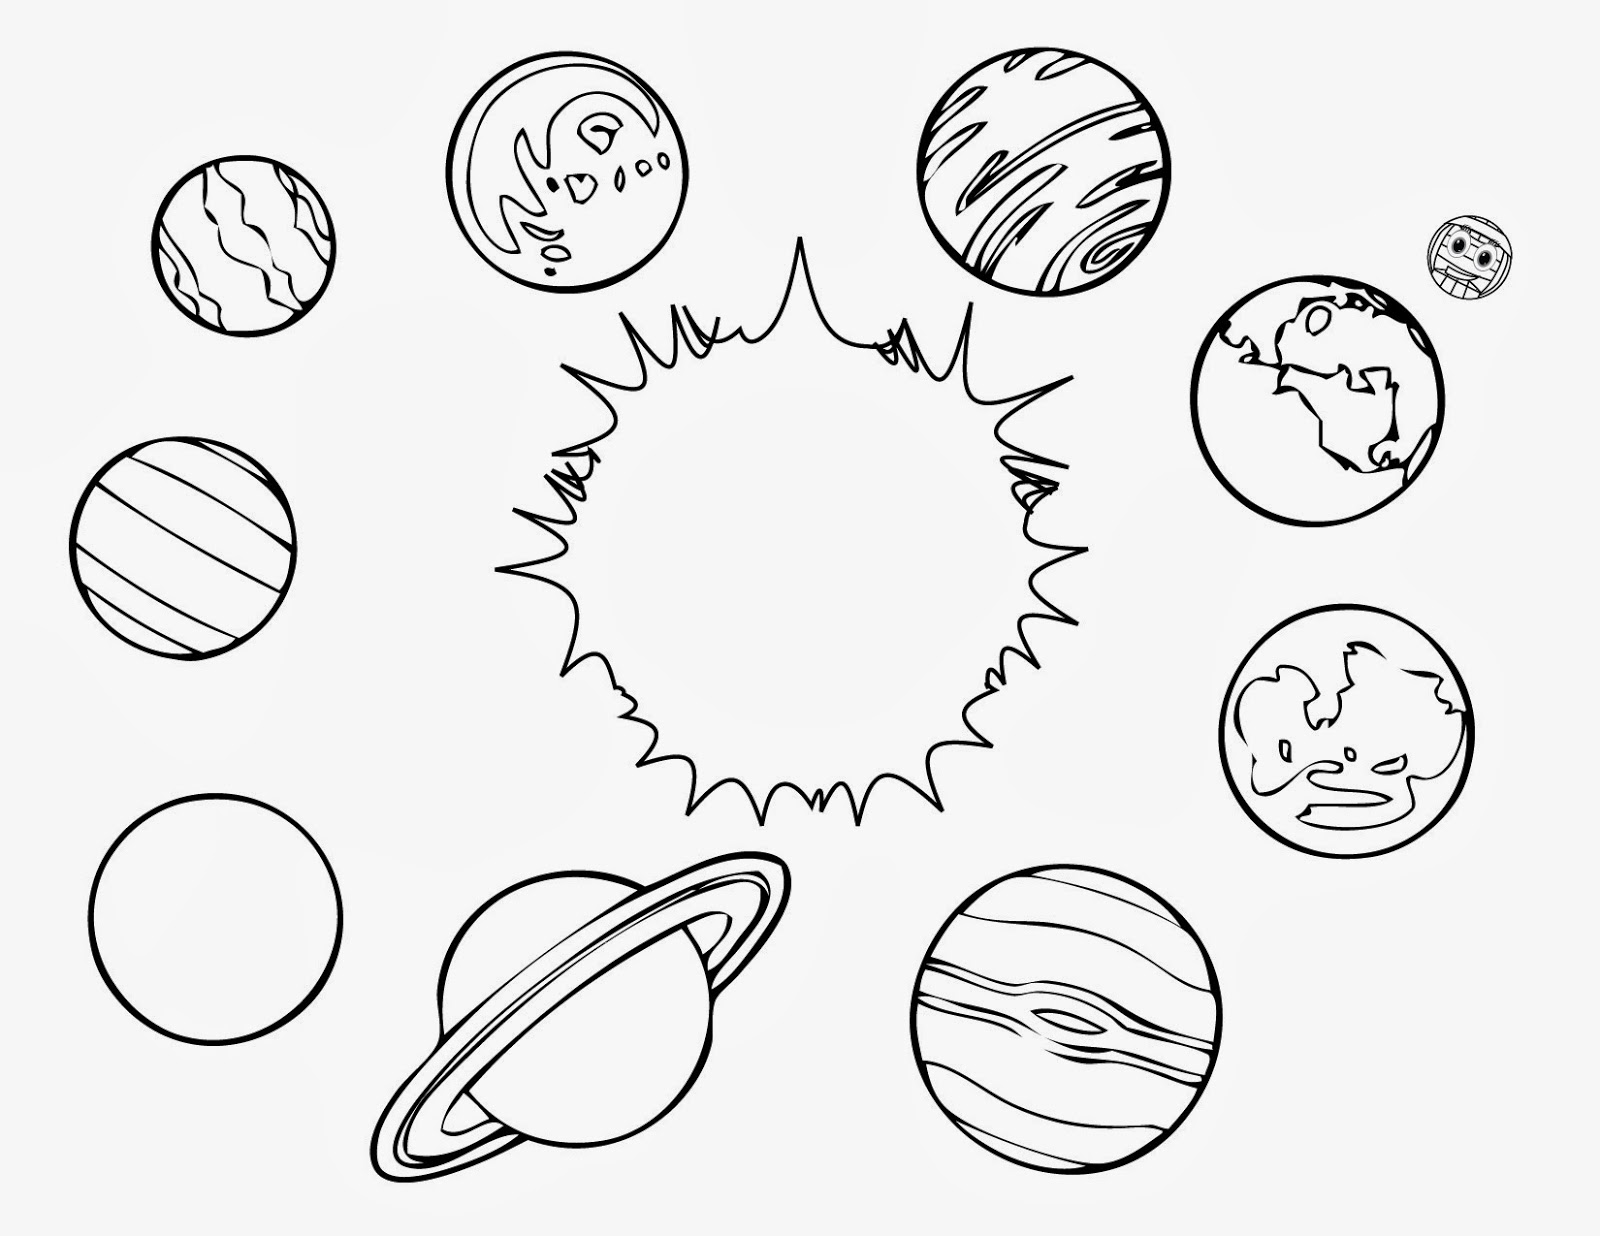 planet coloring page planet coloring pages to download and print for free page coloring planet